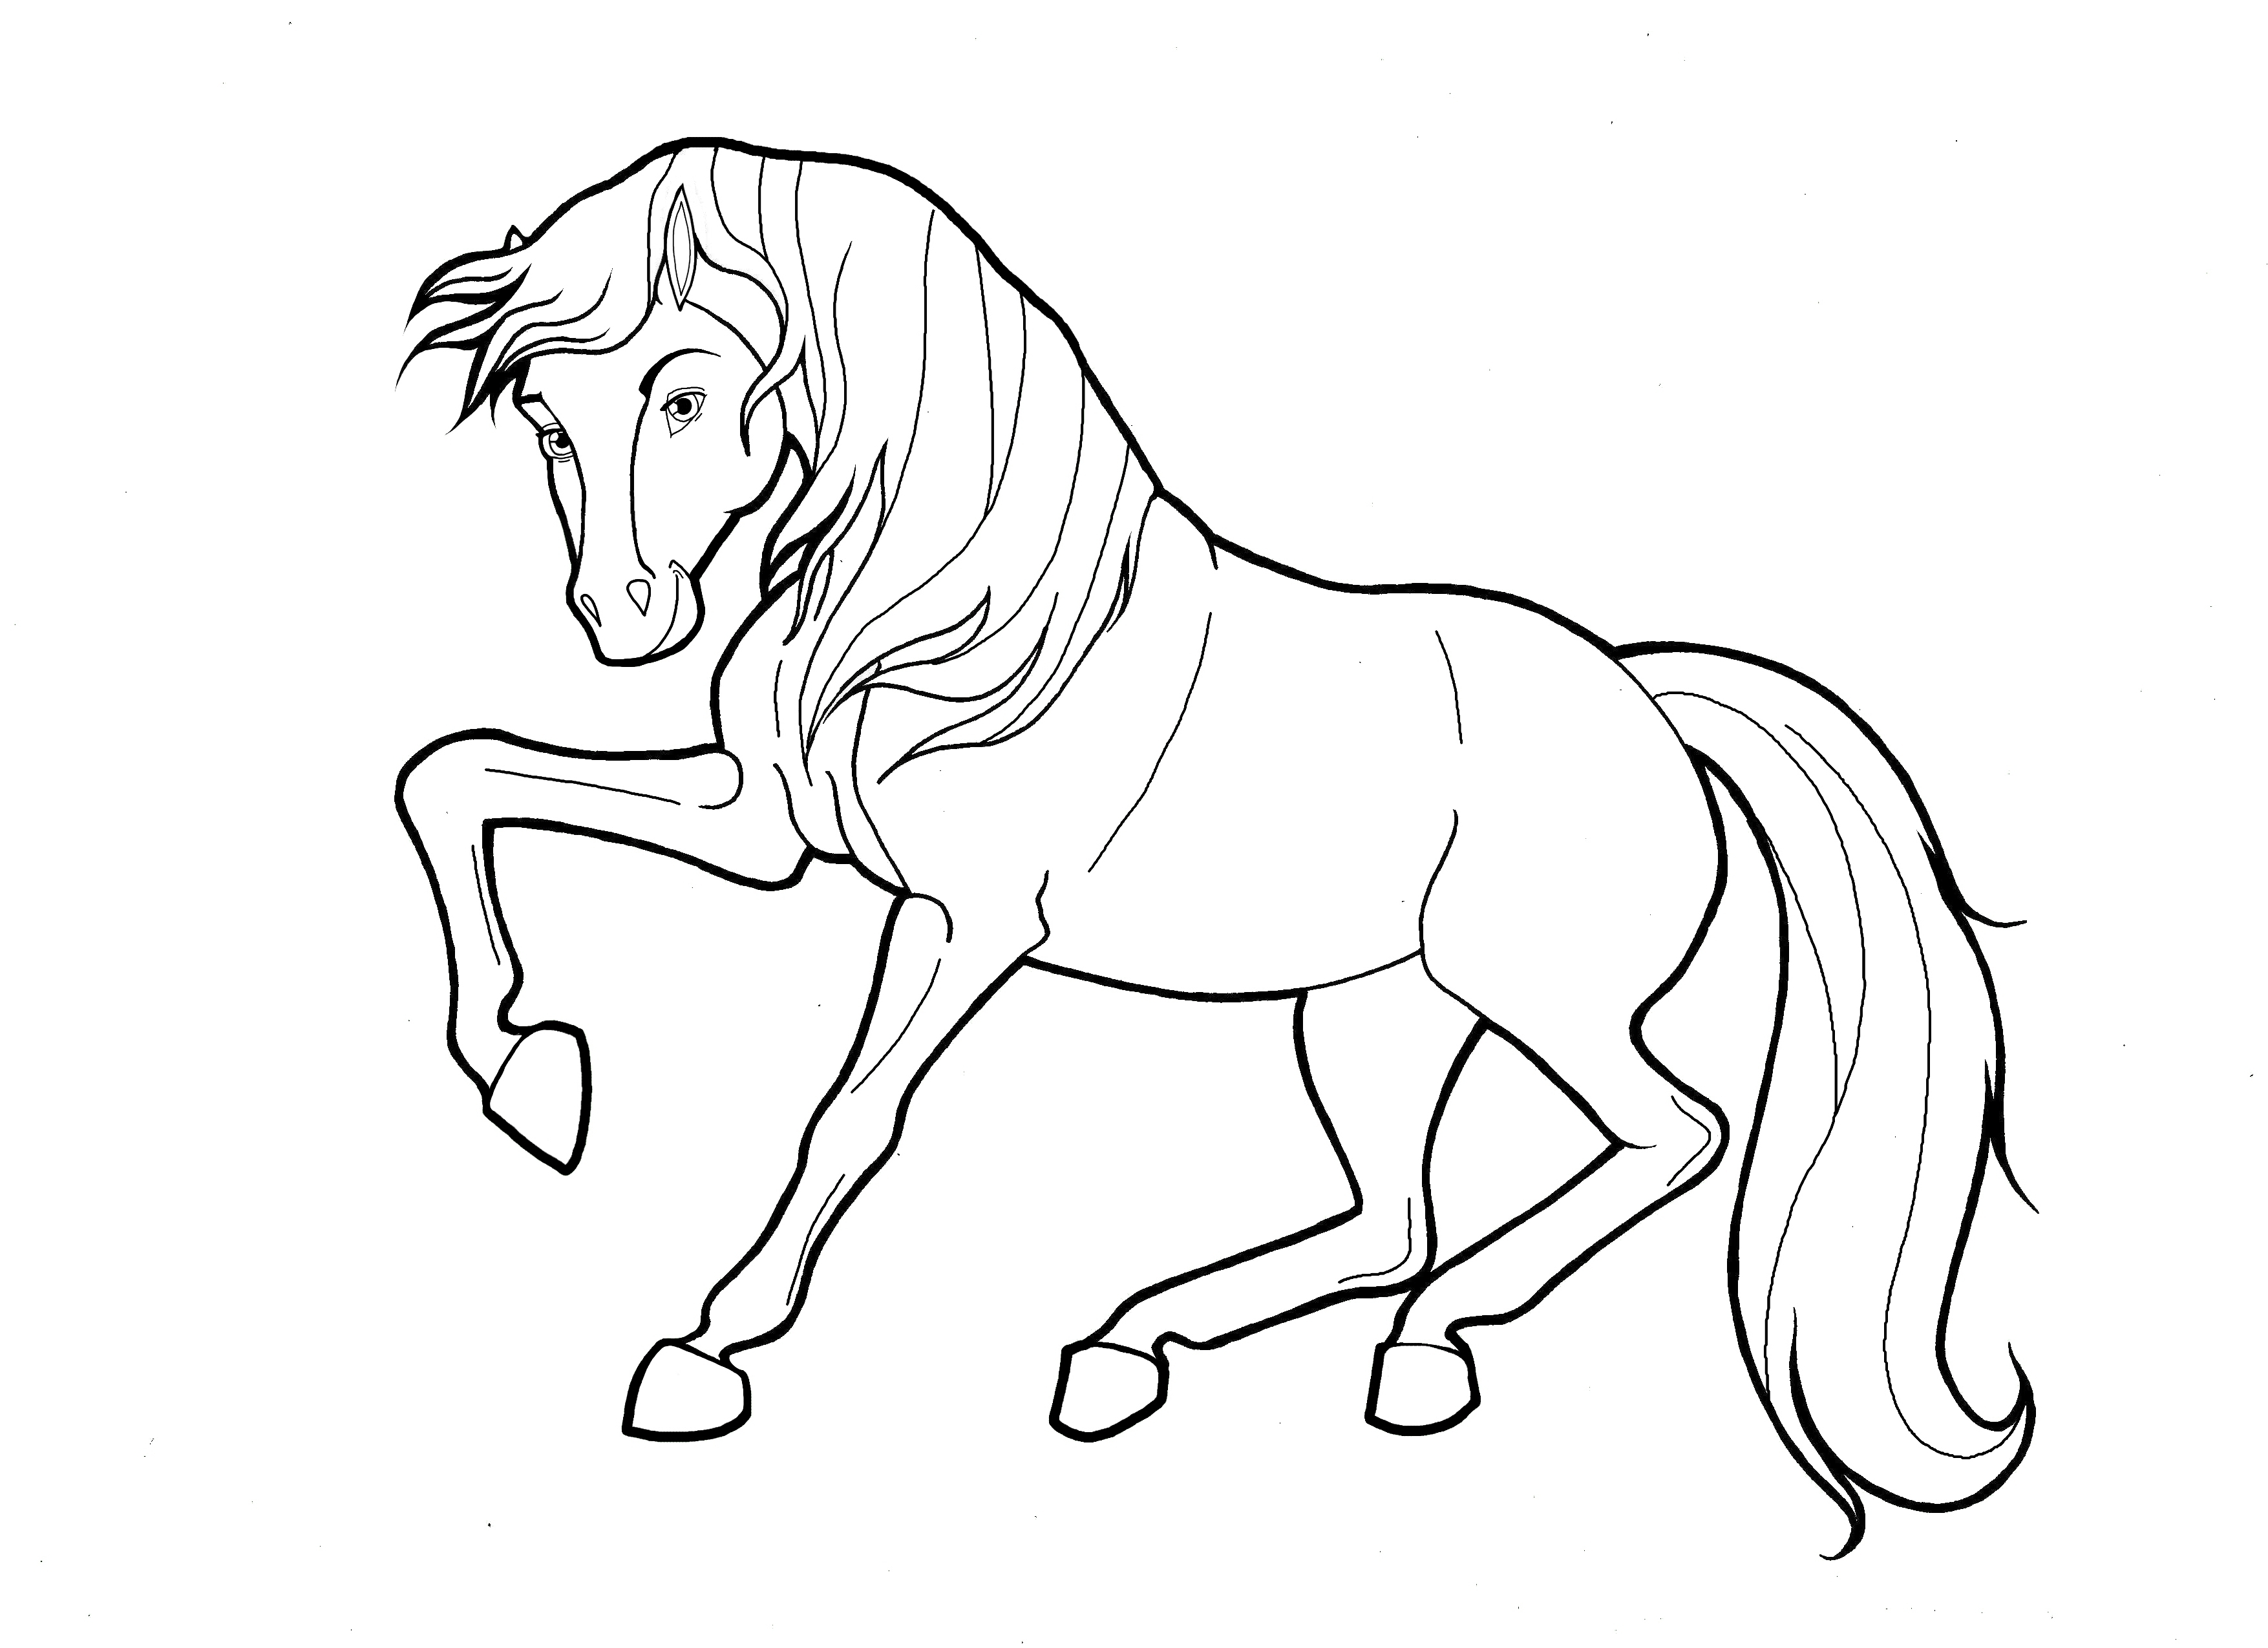 coloring pages of horse 30 printable horse coloring pages horse coloring pages of